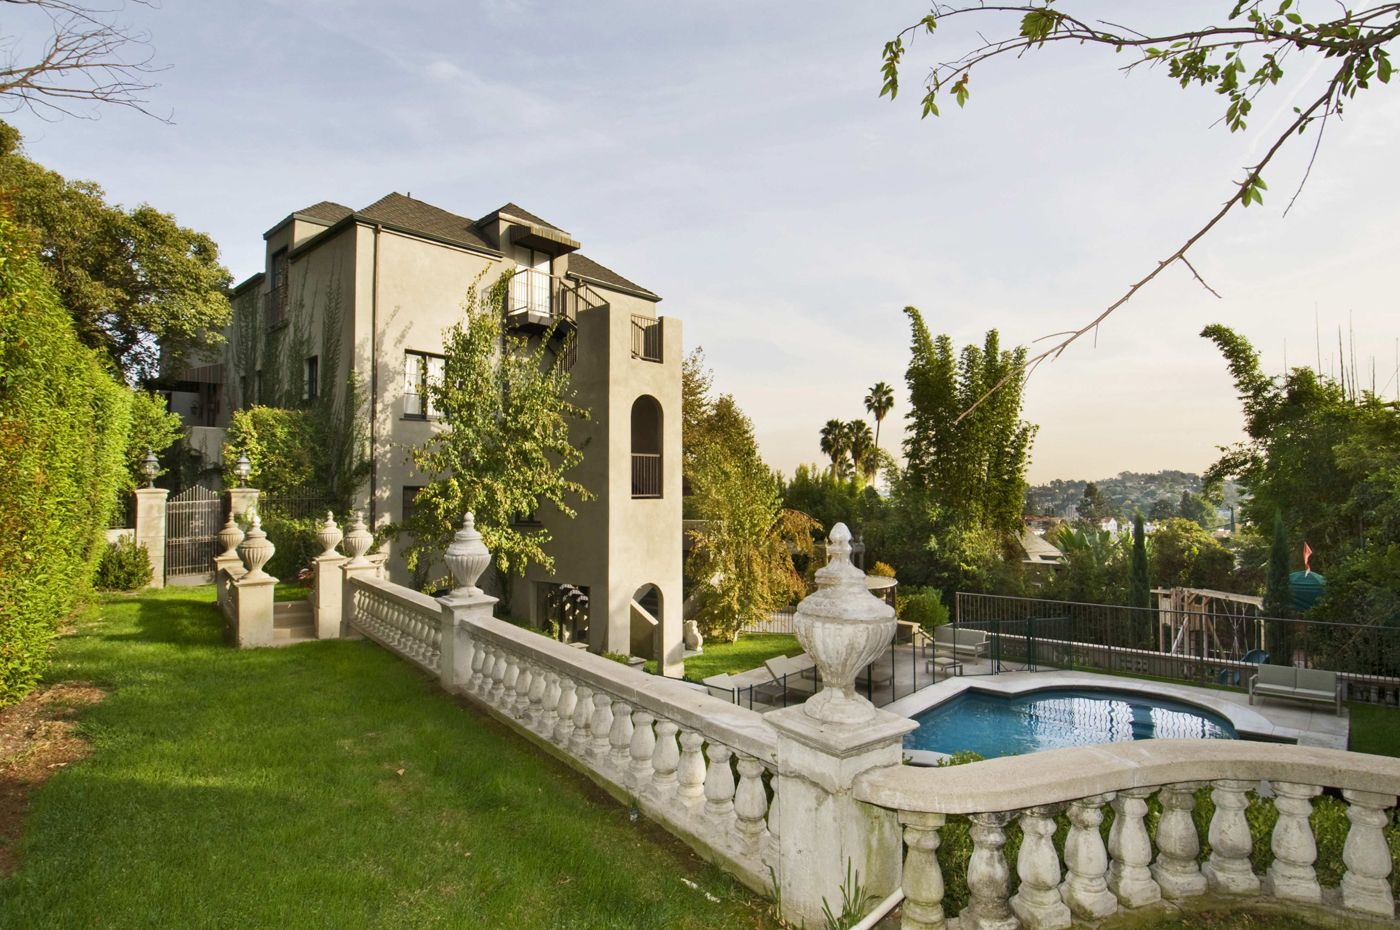 Katy Perry S Crib Is Sweet Celebrity Houses Los Angeles Homes